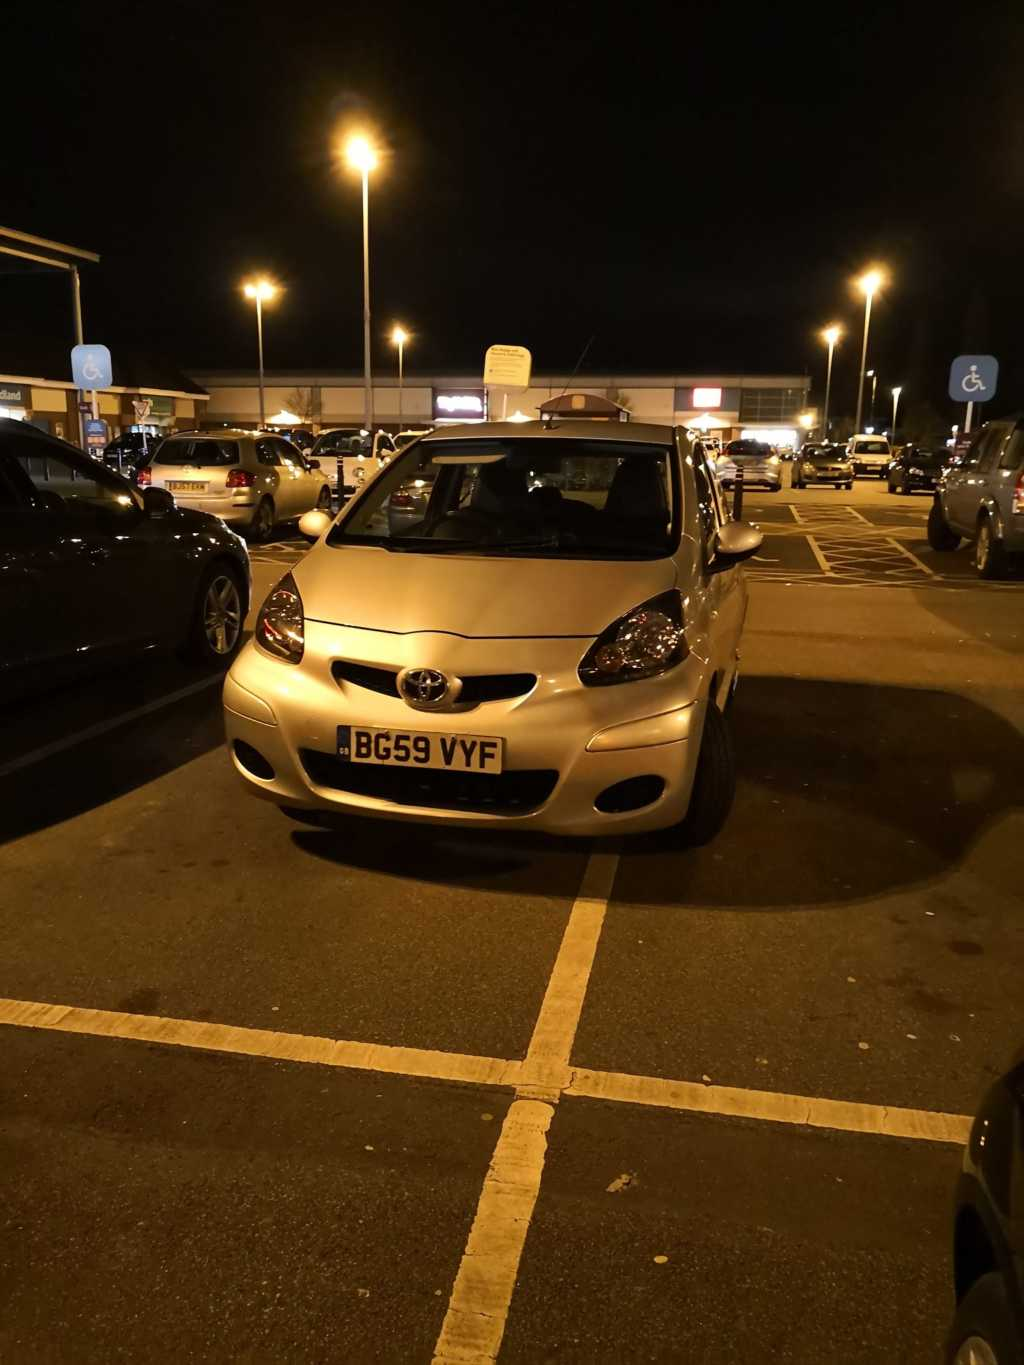 BG59 VYF is a Selfish Parker